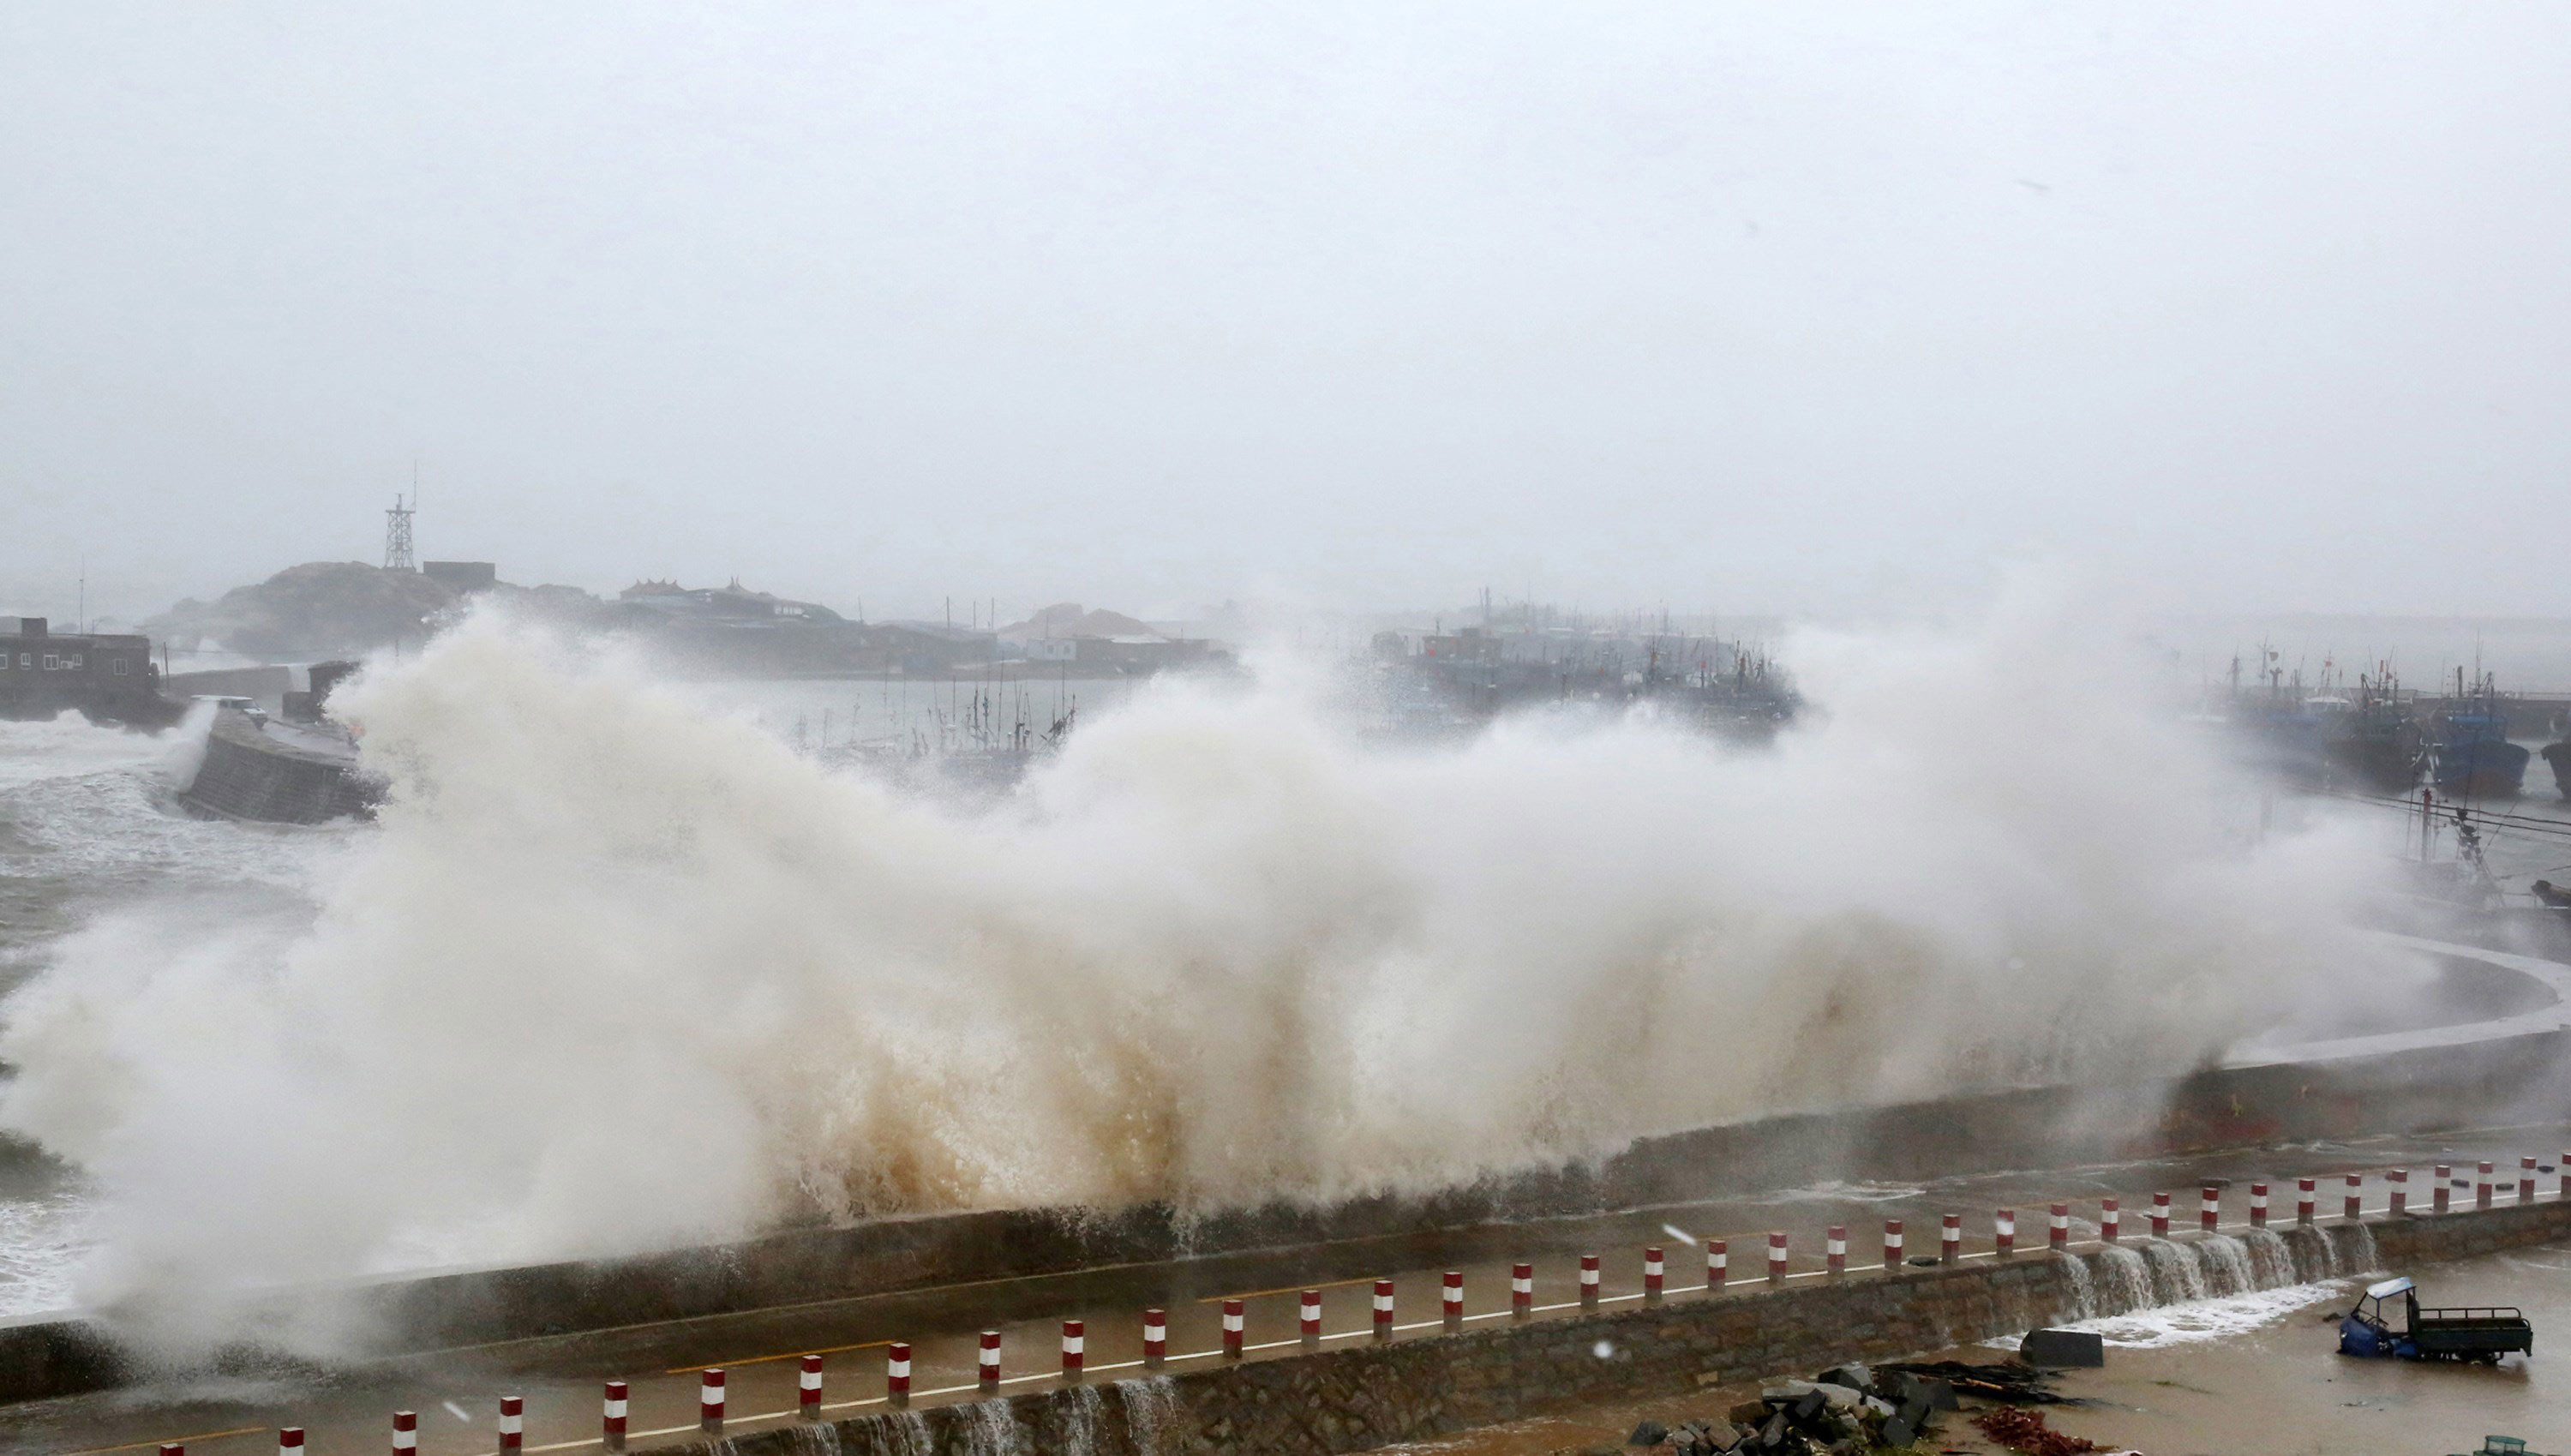 Waves crash into a pier in Huian county in Quanzhou in Fujian province of eastern China [China Out/AFP]